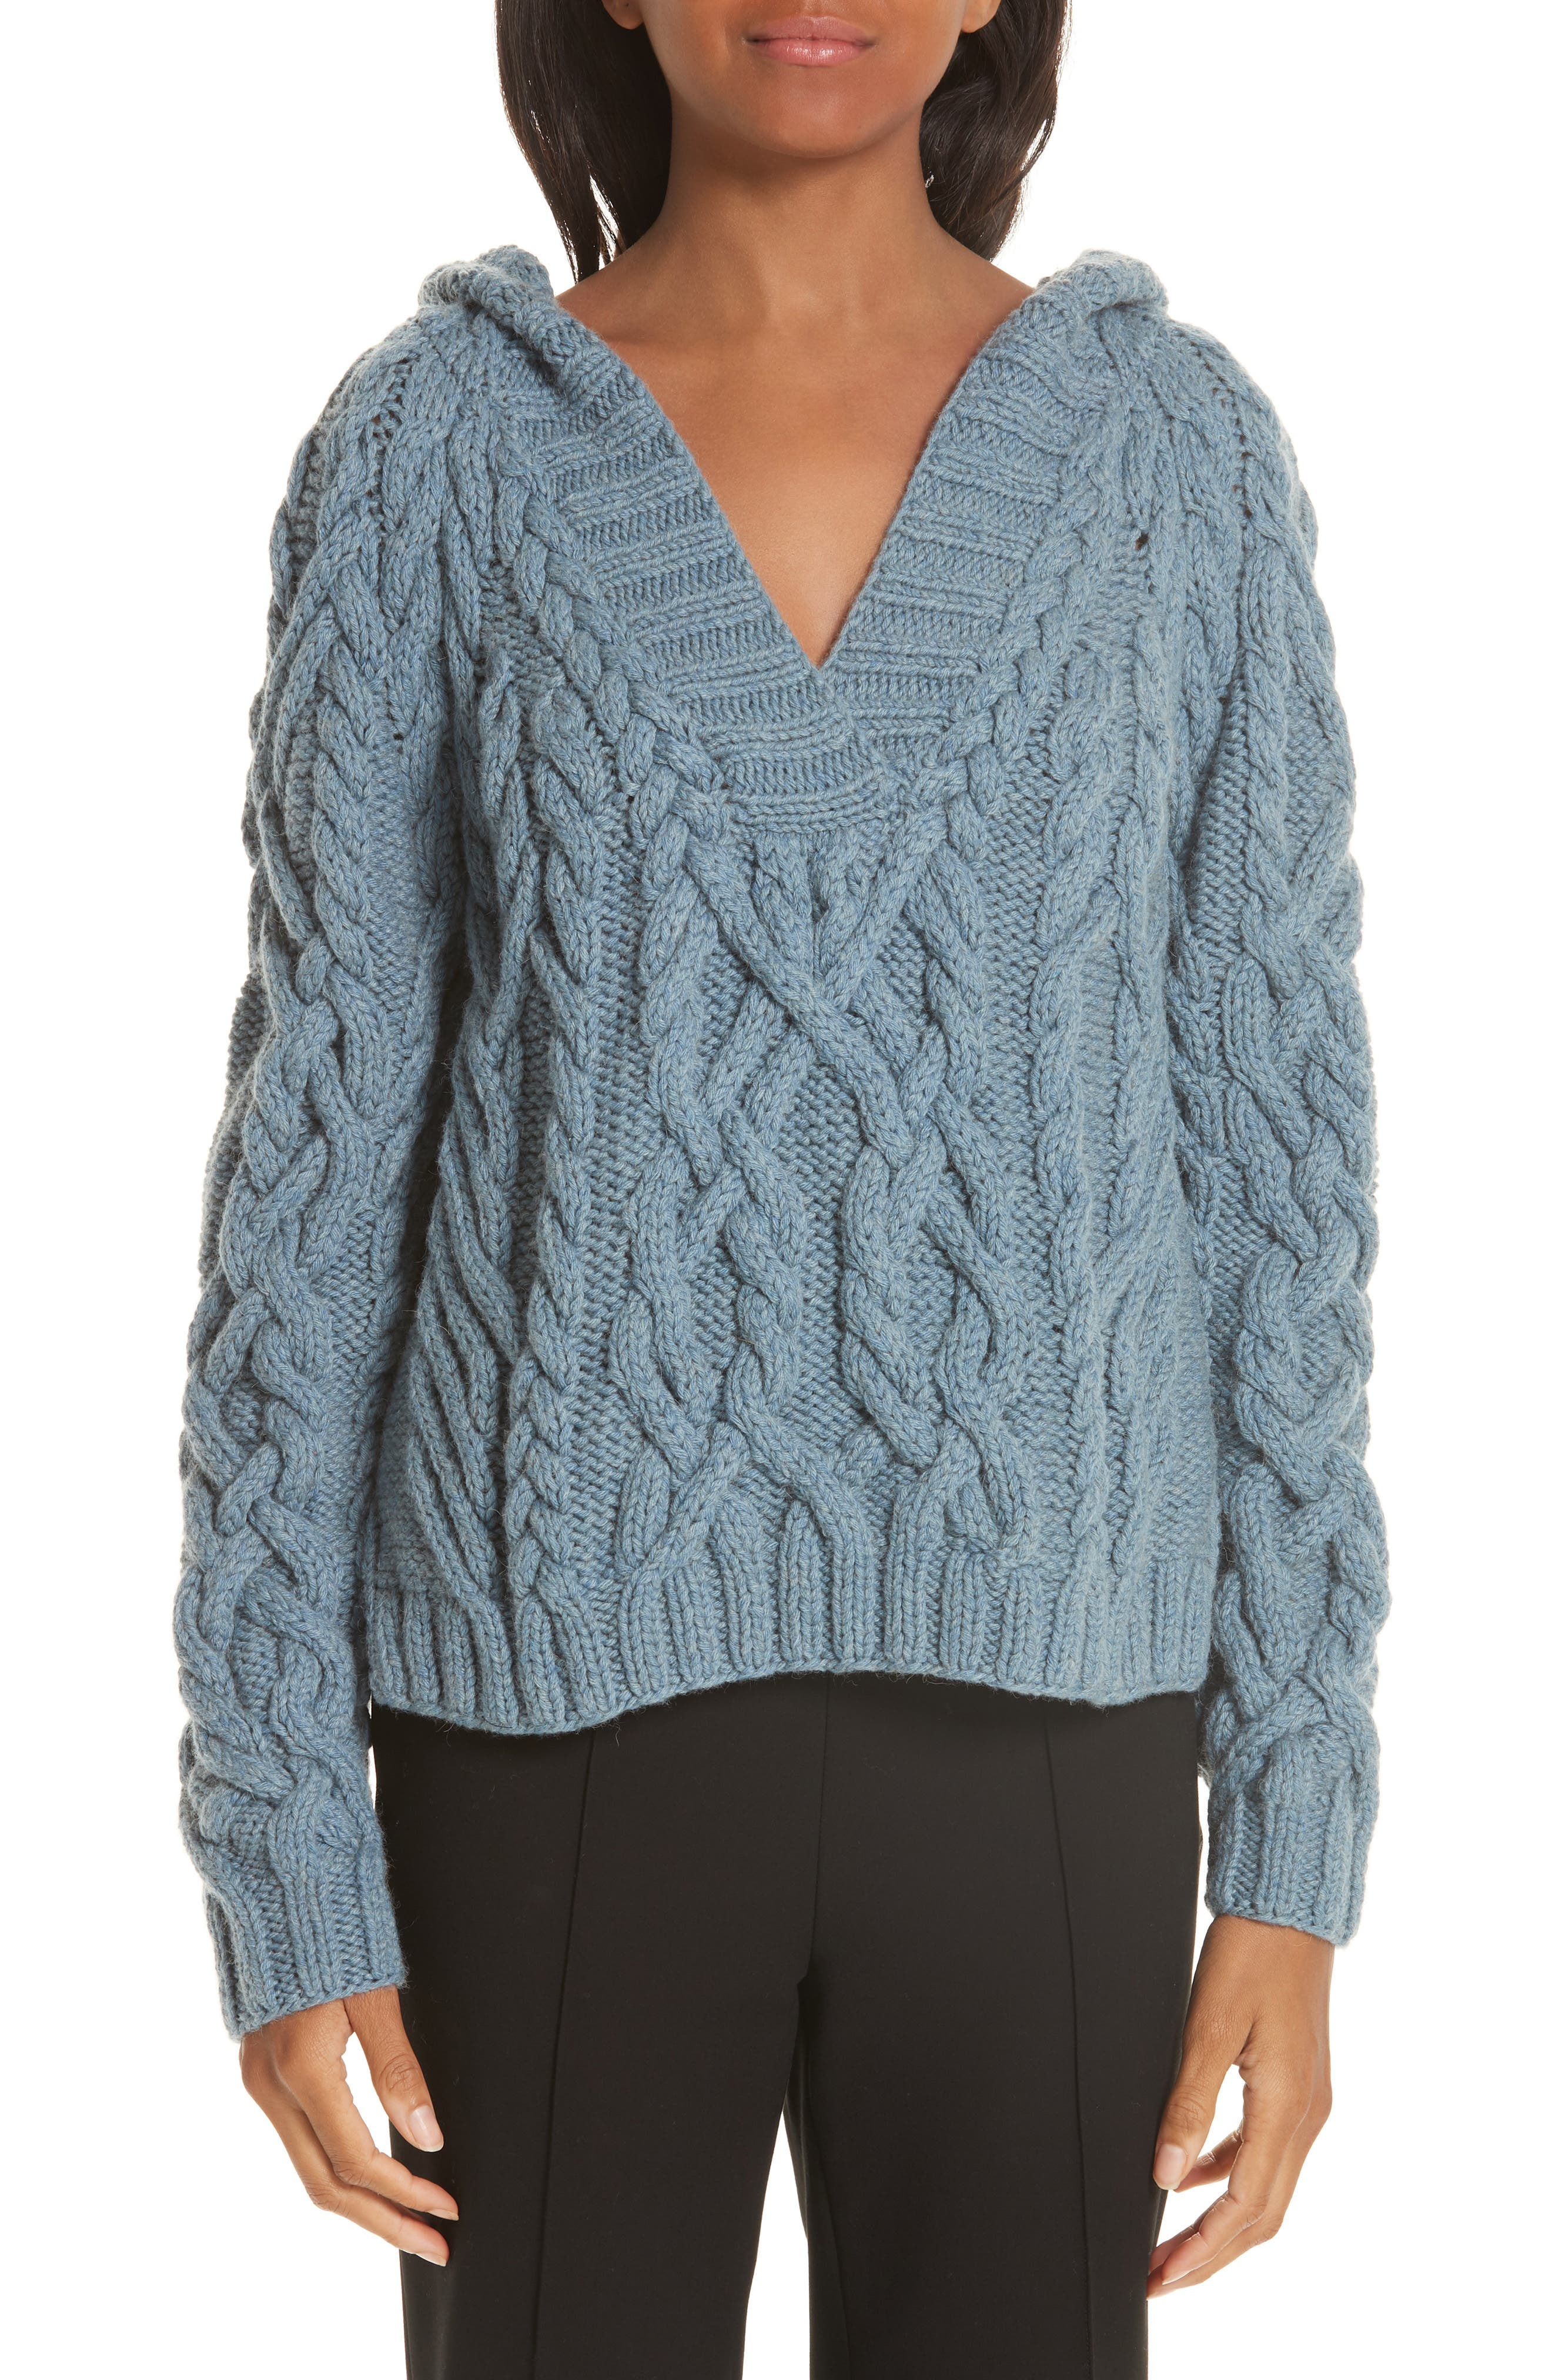 PARTOW Melange Cable Knit Hooded Sweater in Blue